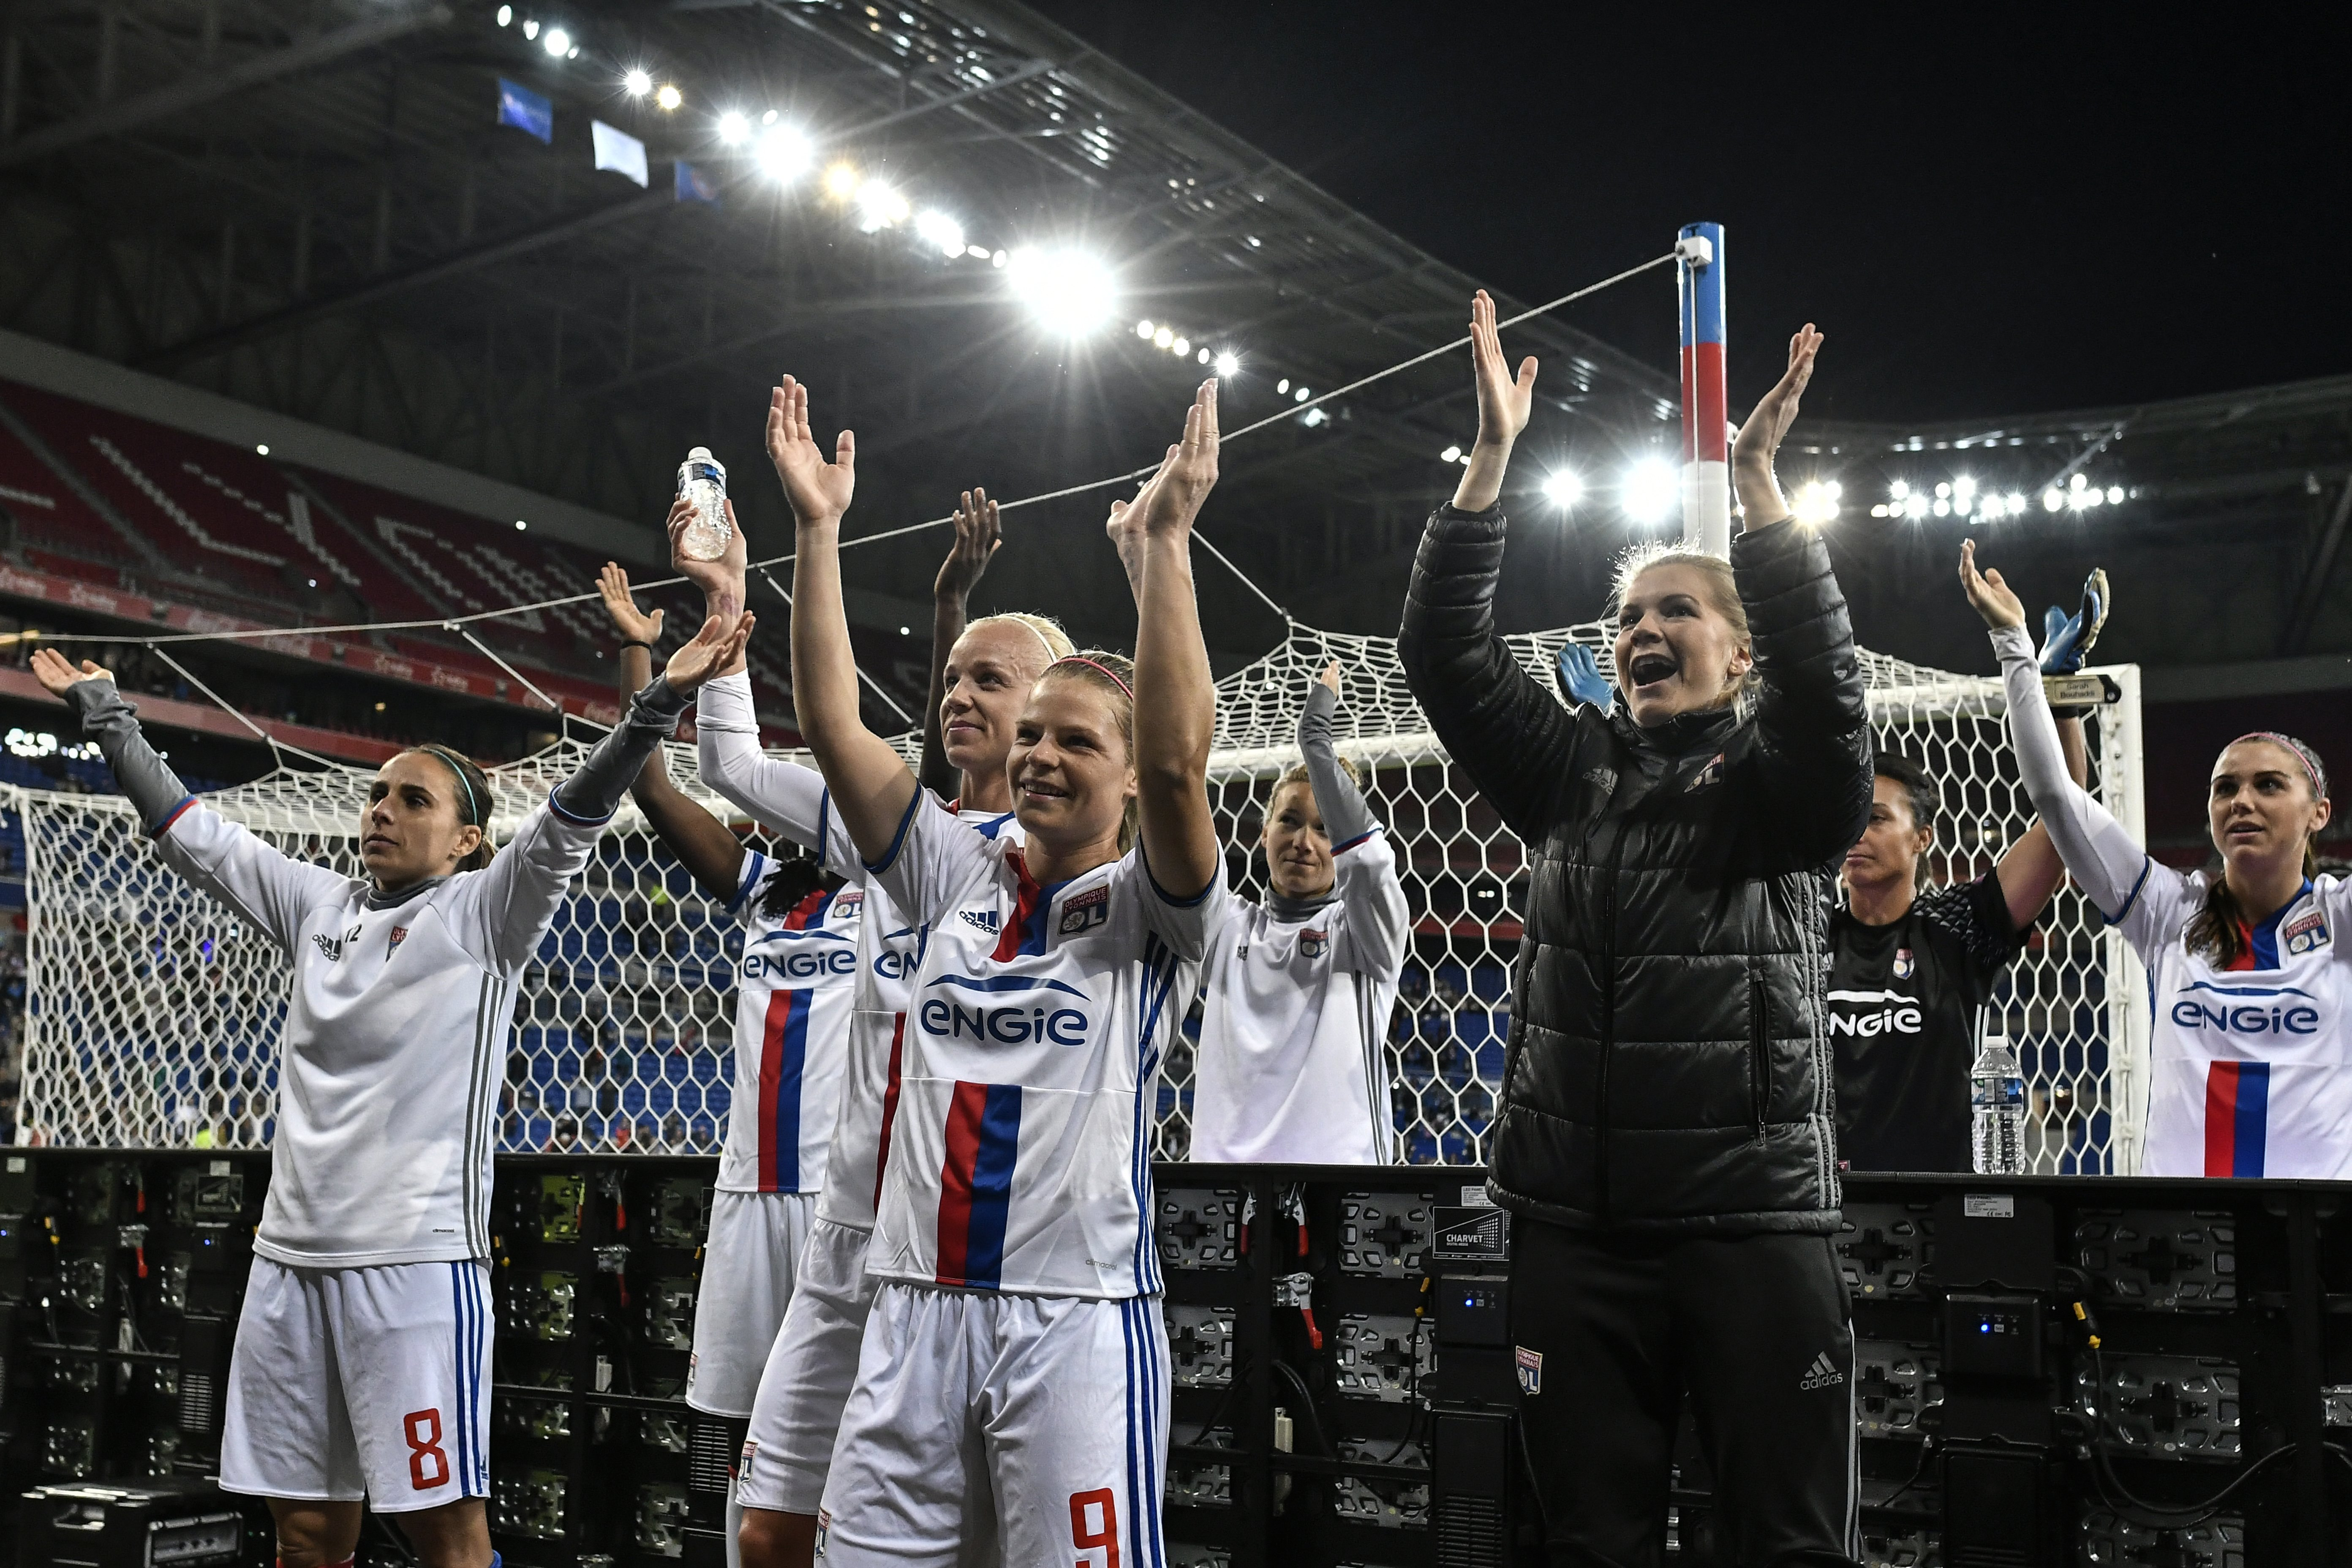 Lyon beats PSG to claim 4th Women's Champions League title